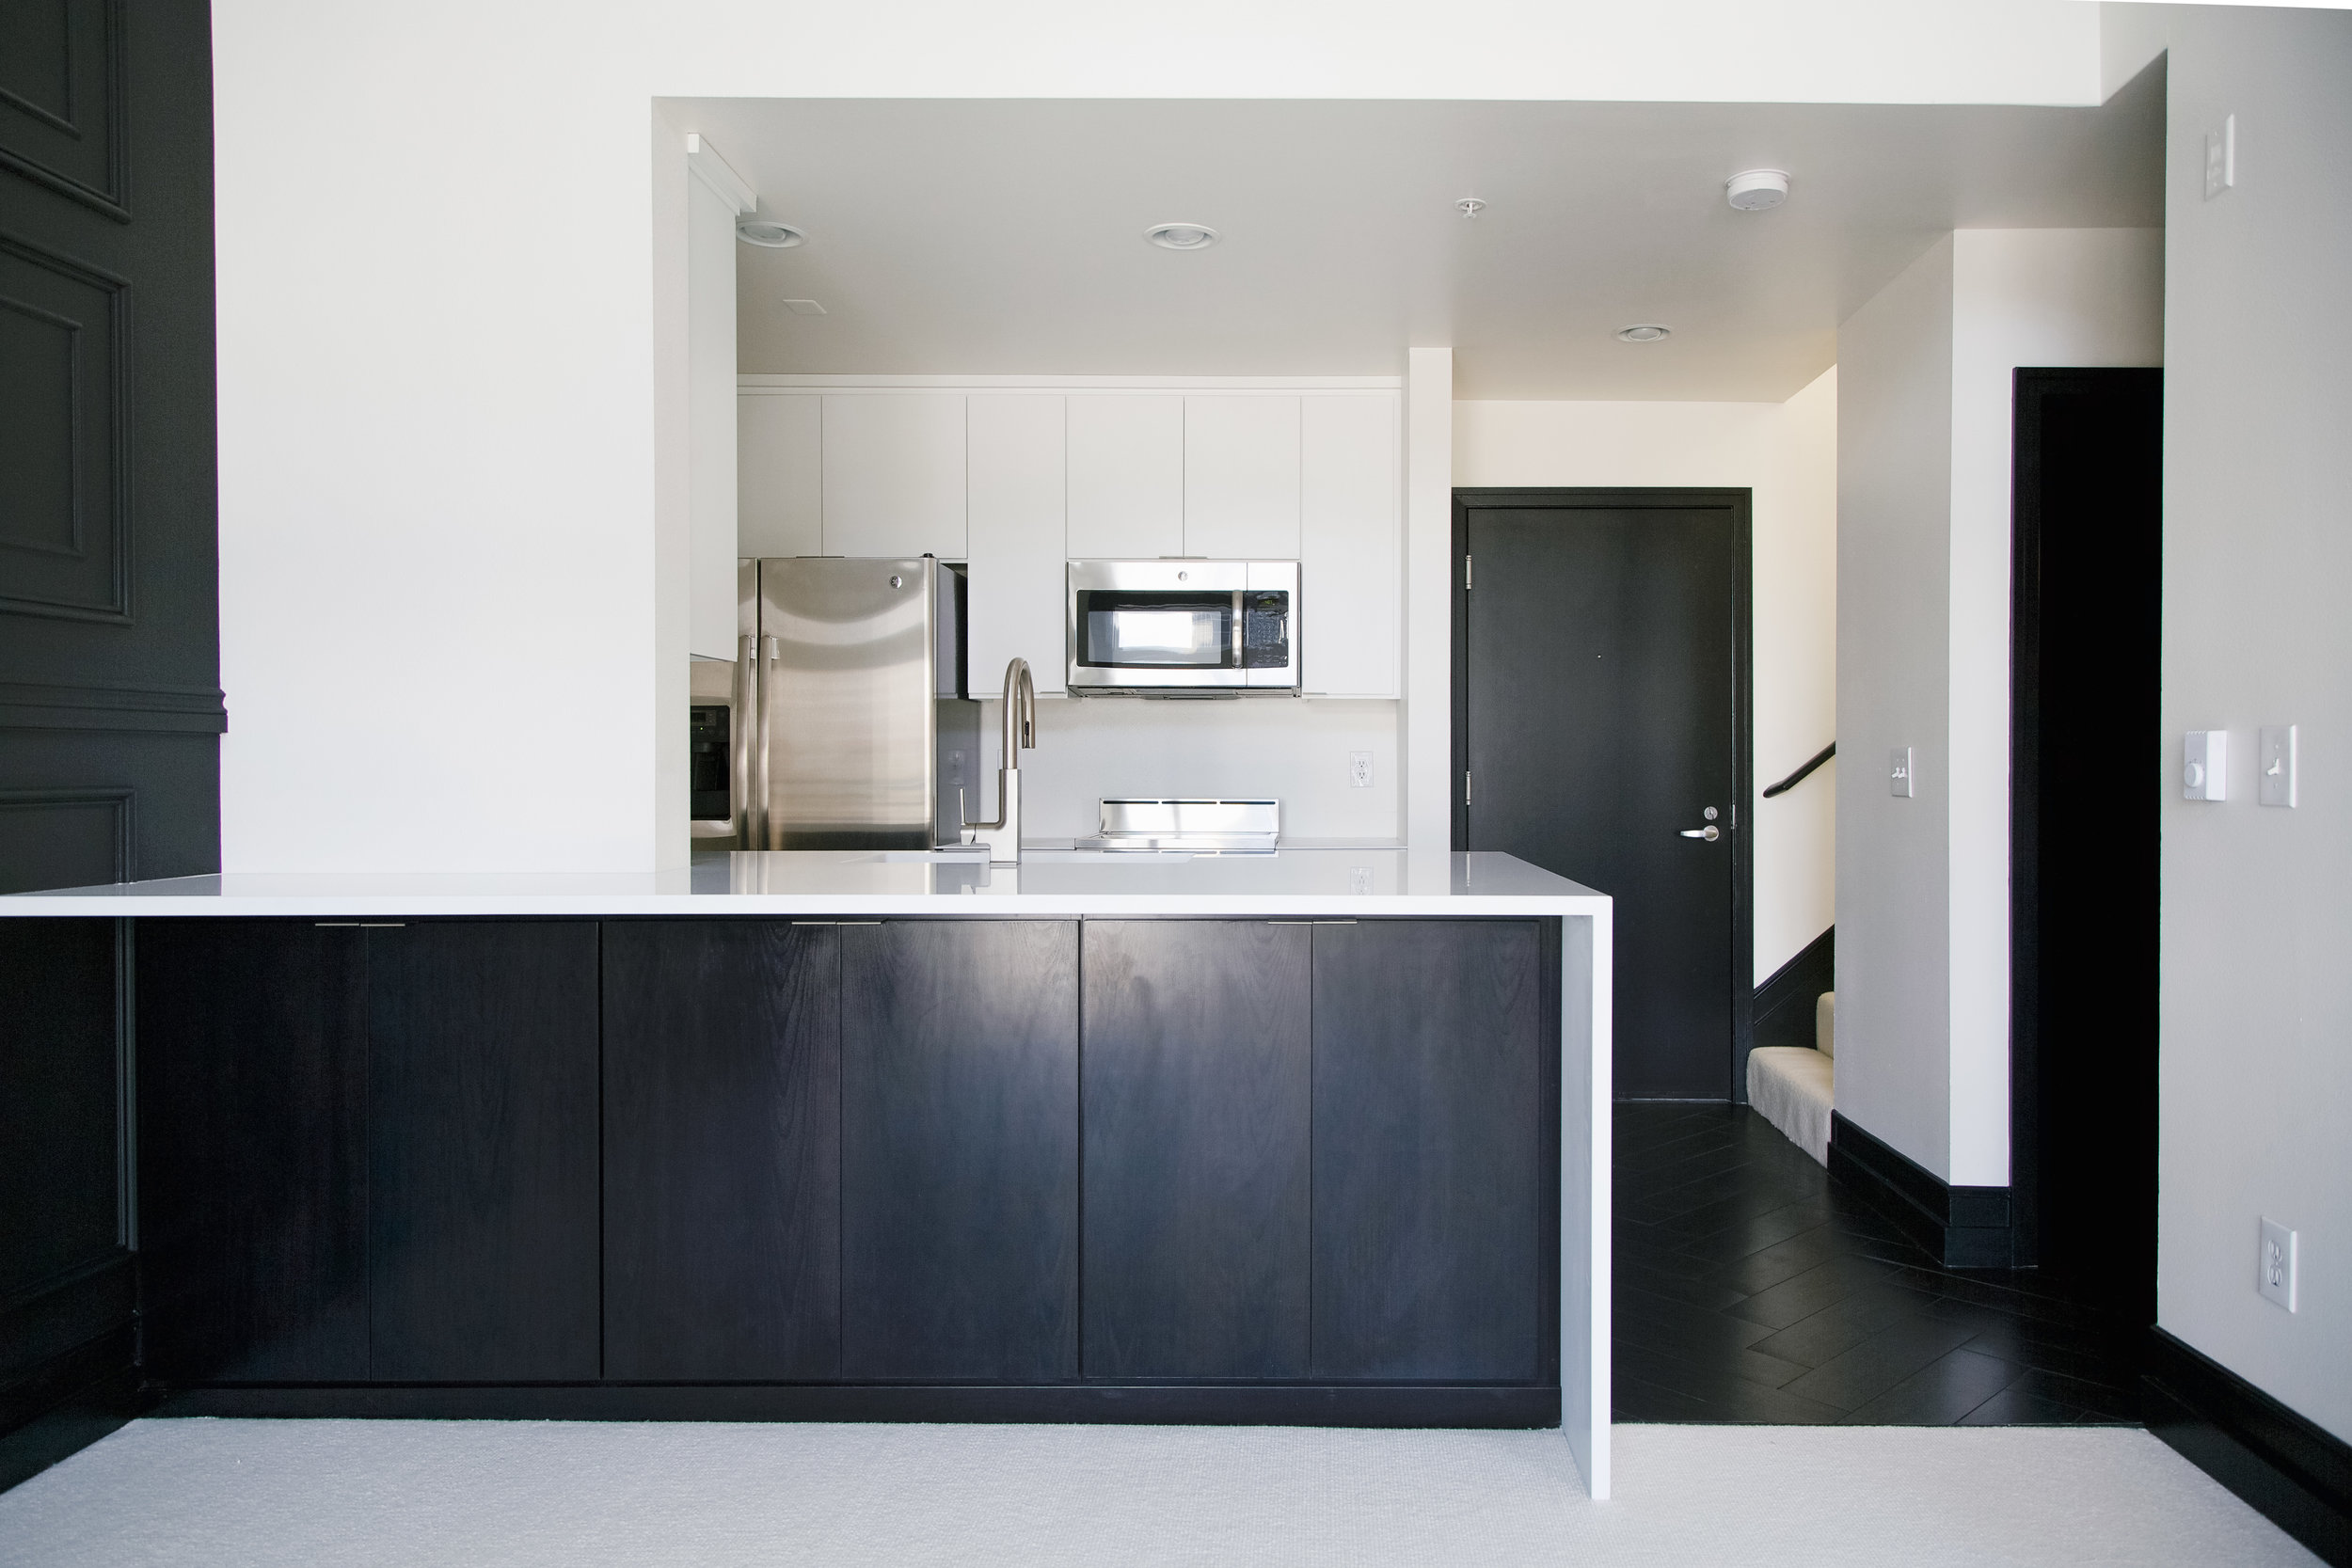 Black and white design with a waterfall countertop in a modern kitchen.